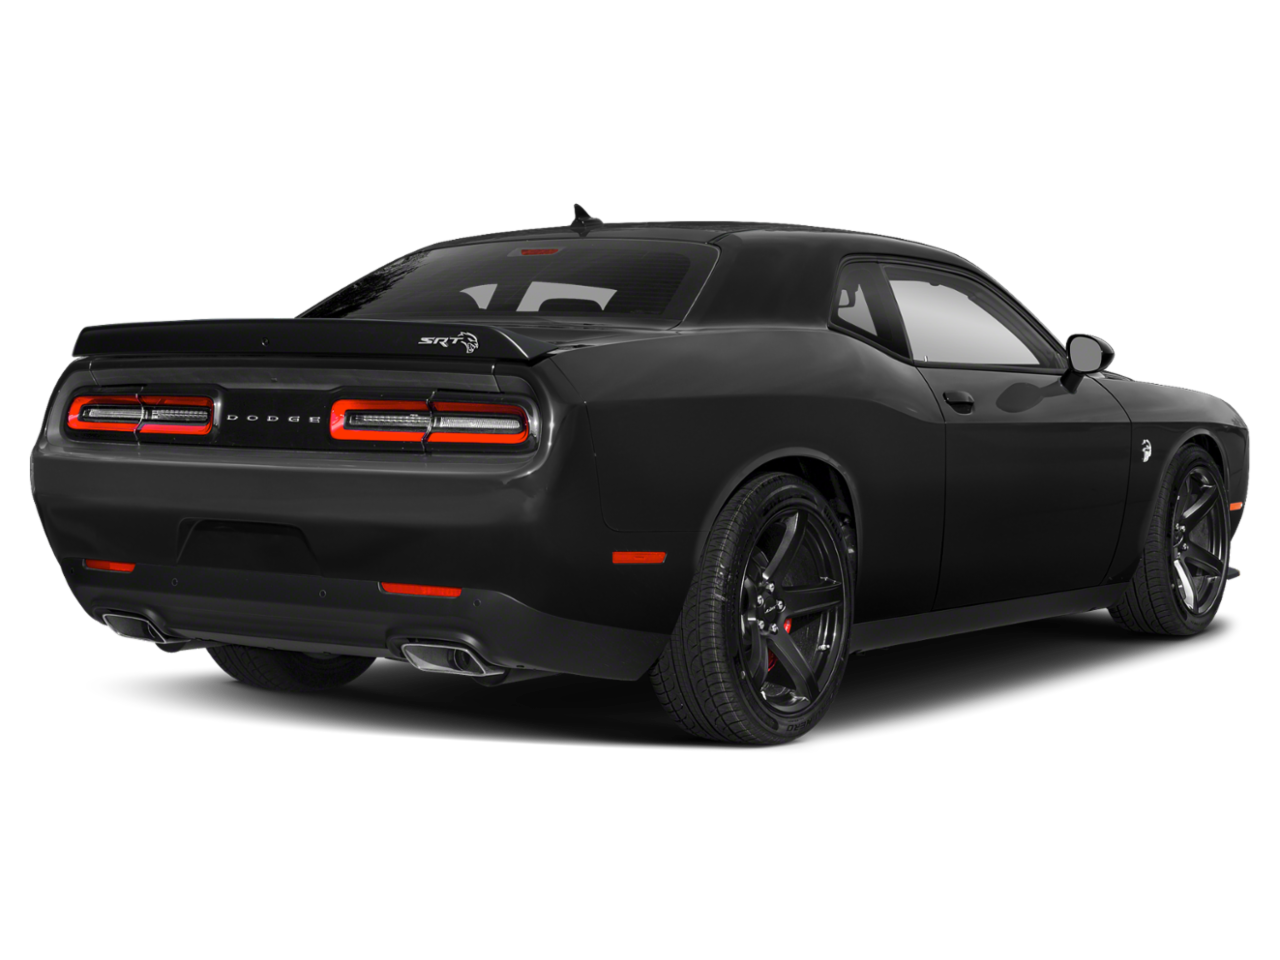 New 2020 DODGE Challenger SRT Hellcat Redeye Widebody